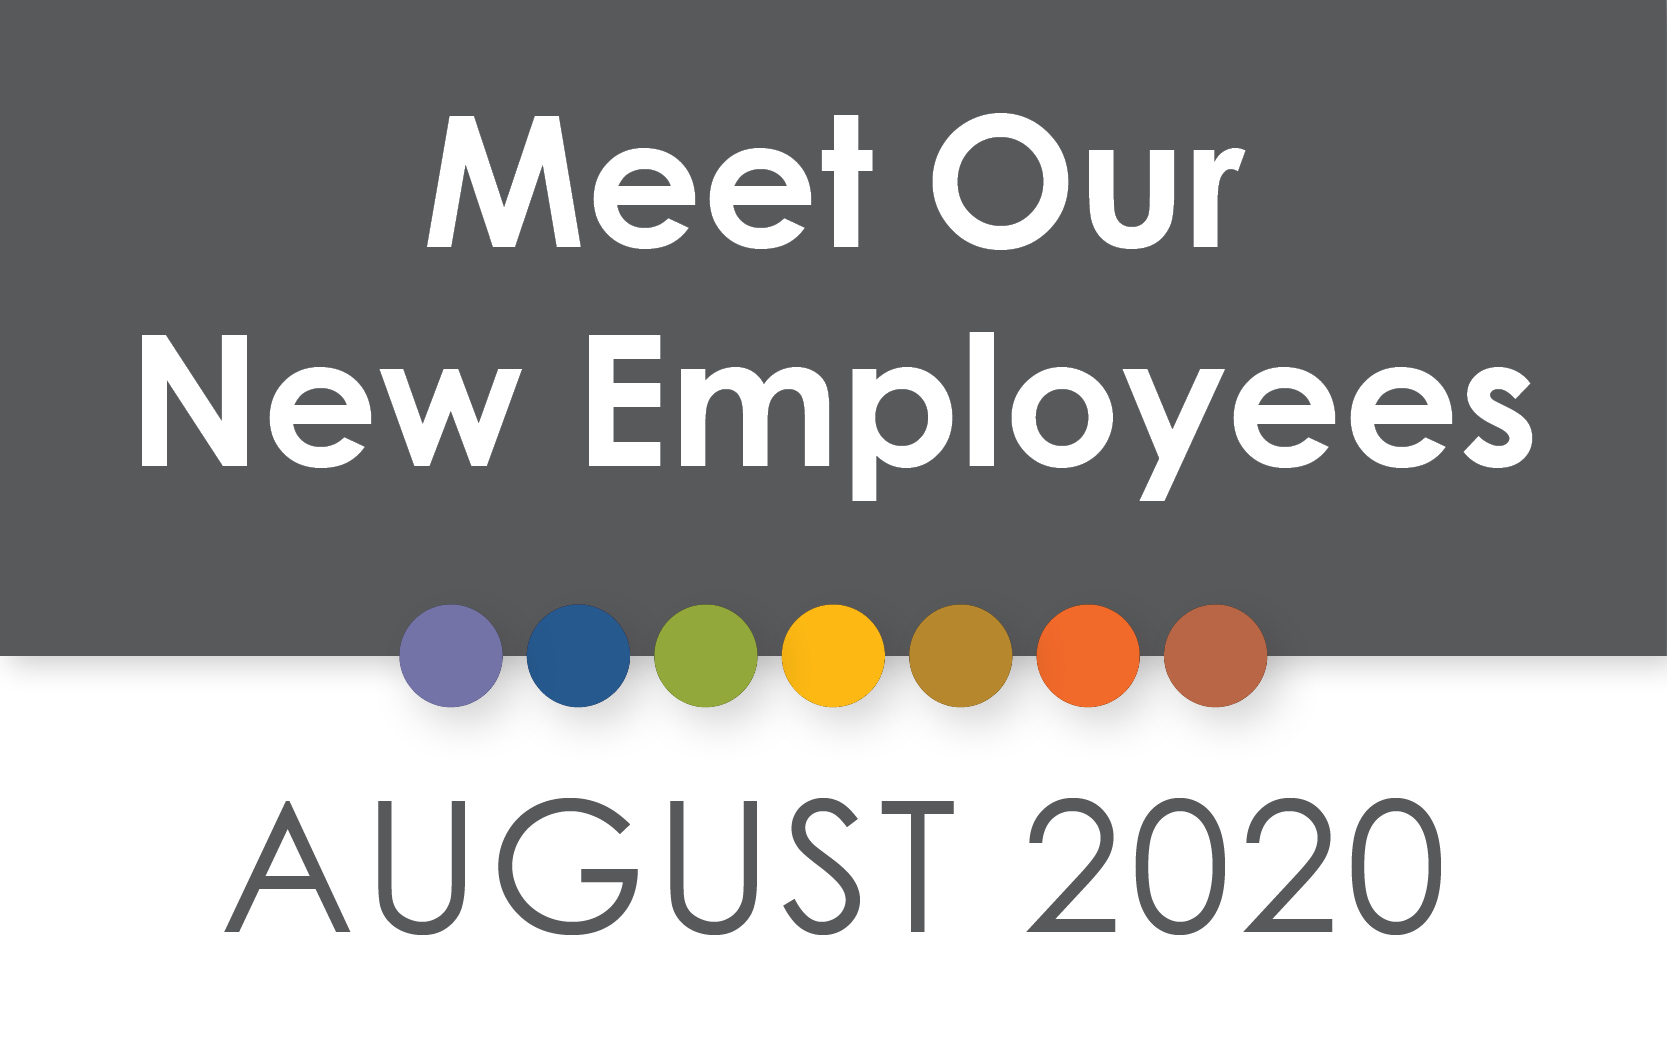 August 2020 New Employees